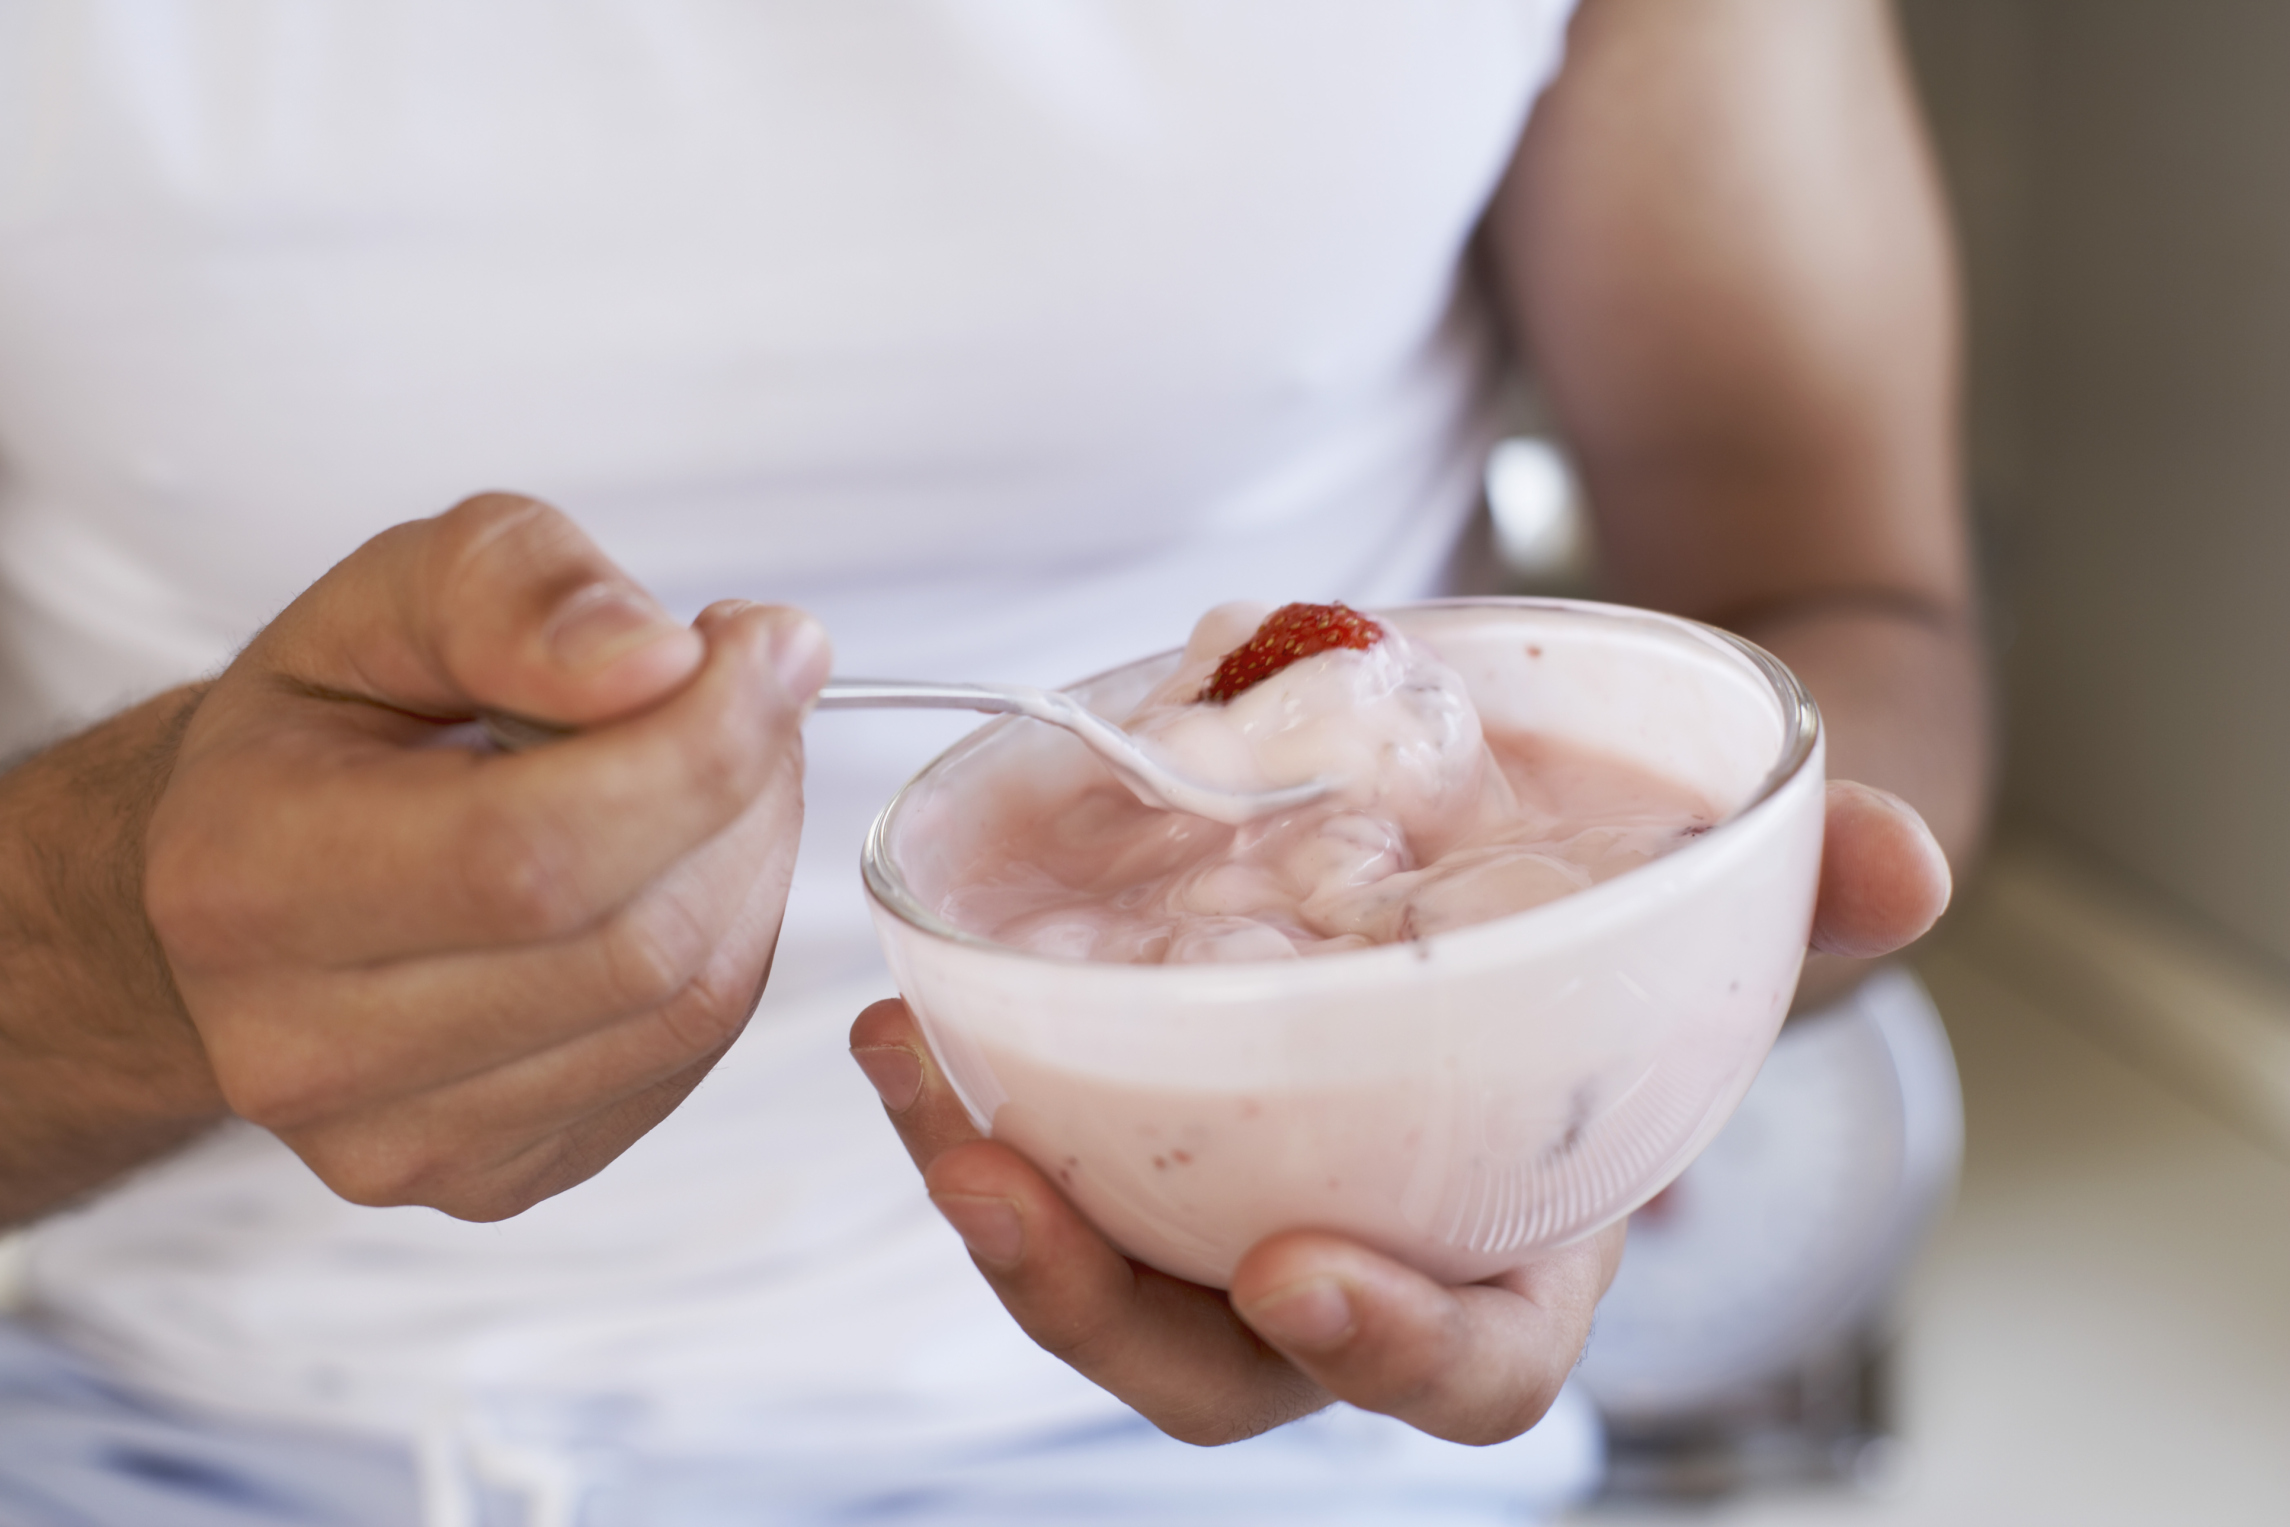 Yogurt comes in a variety of flavors, but they all contain lactose.